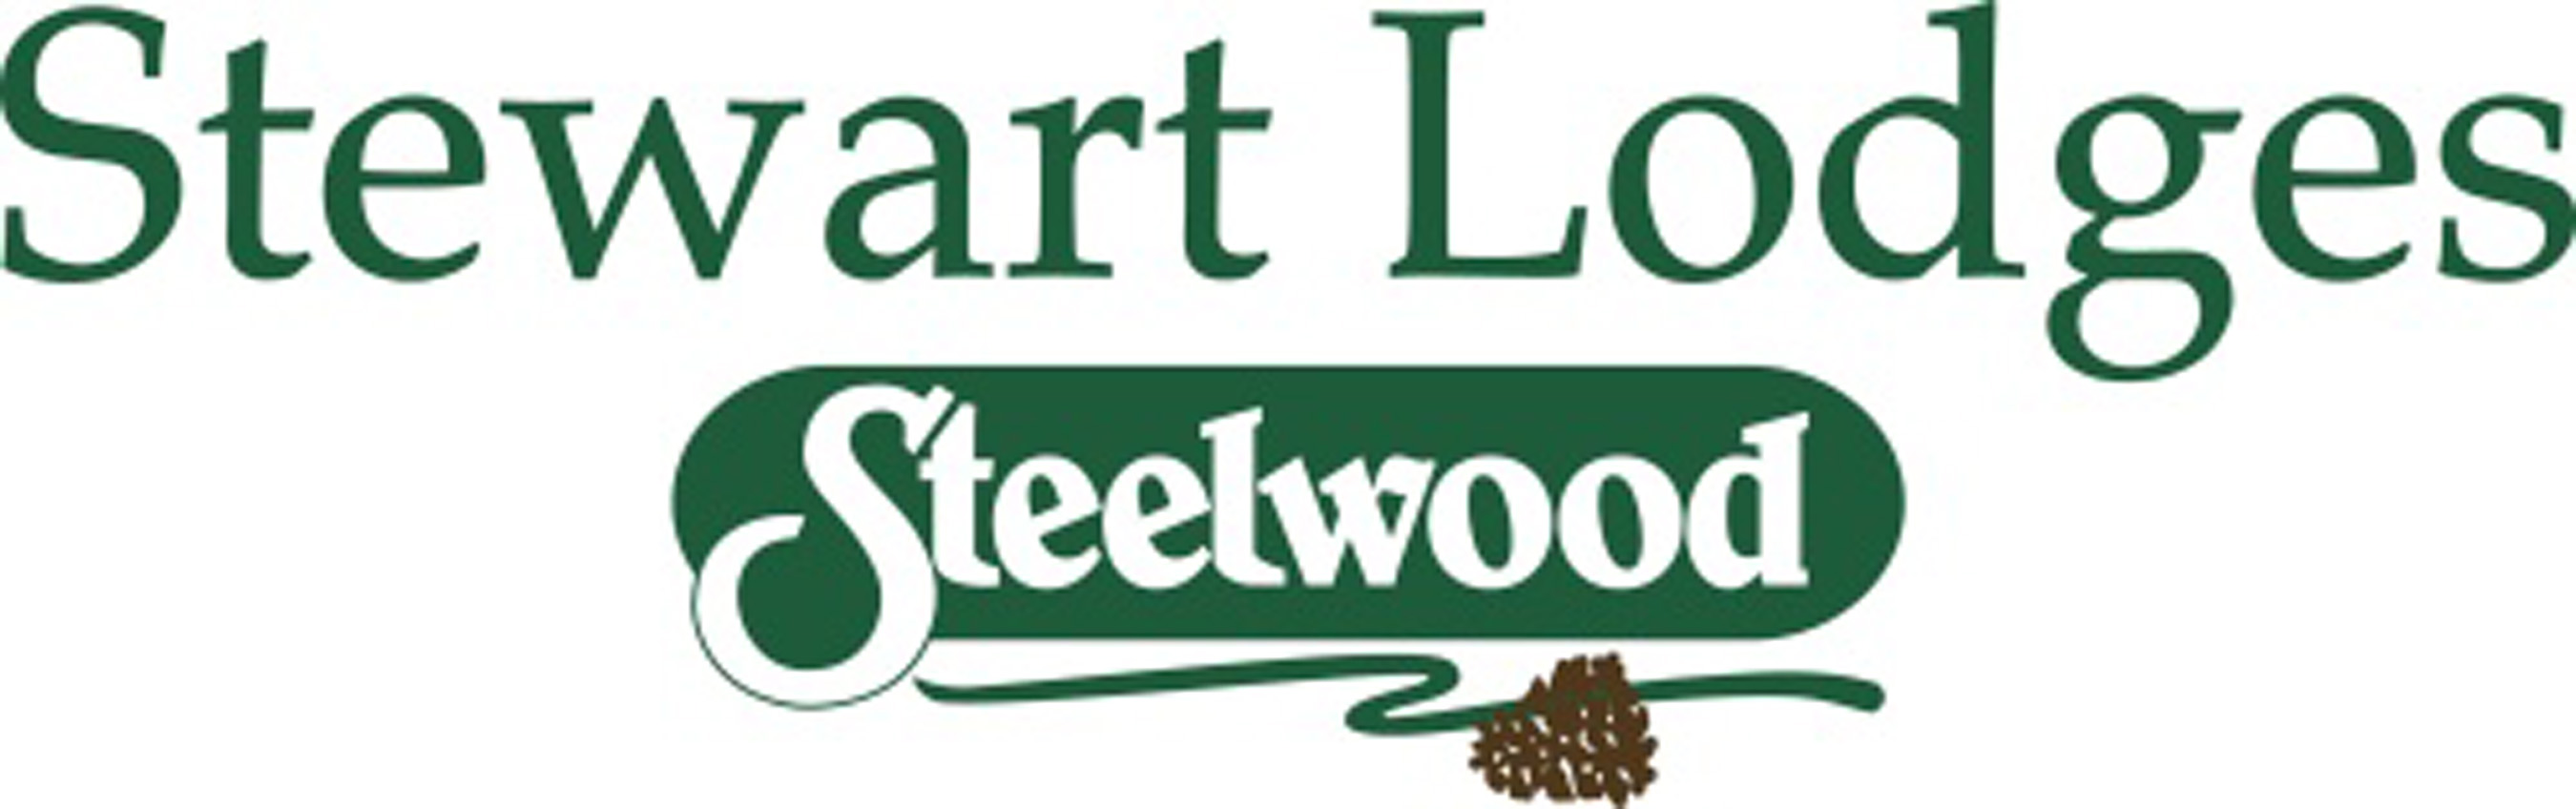 The Stewart Lodges at Steelwood